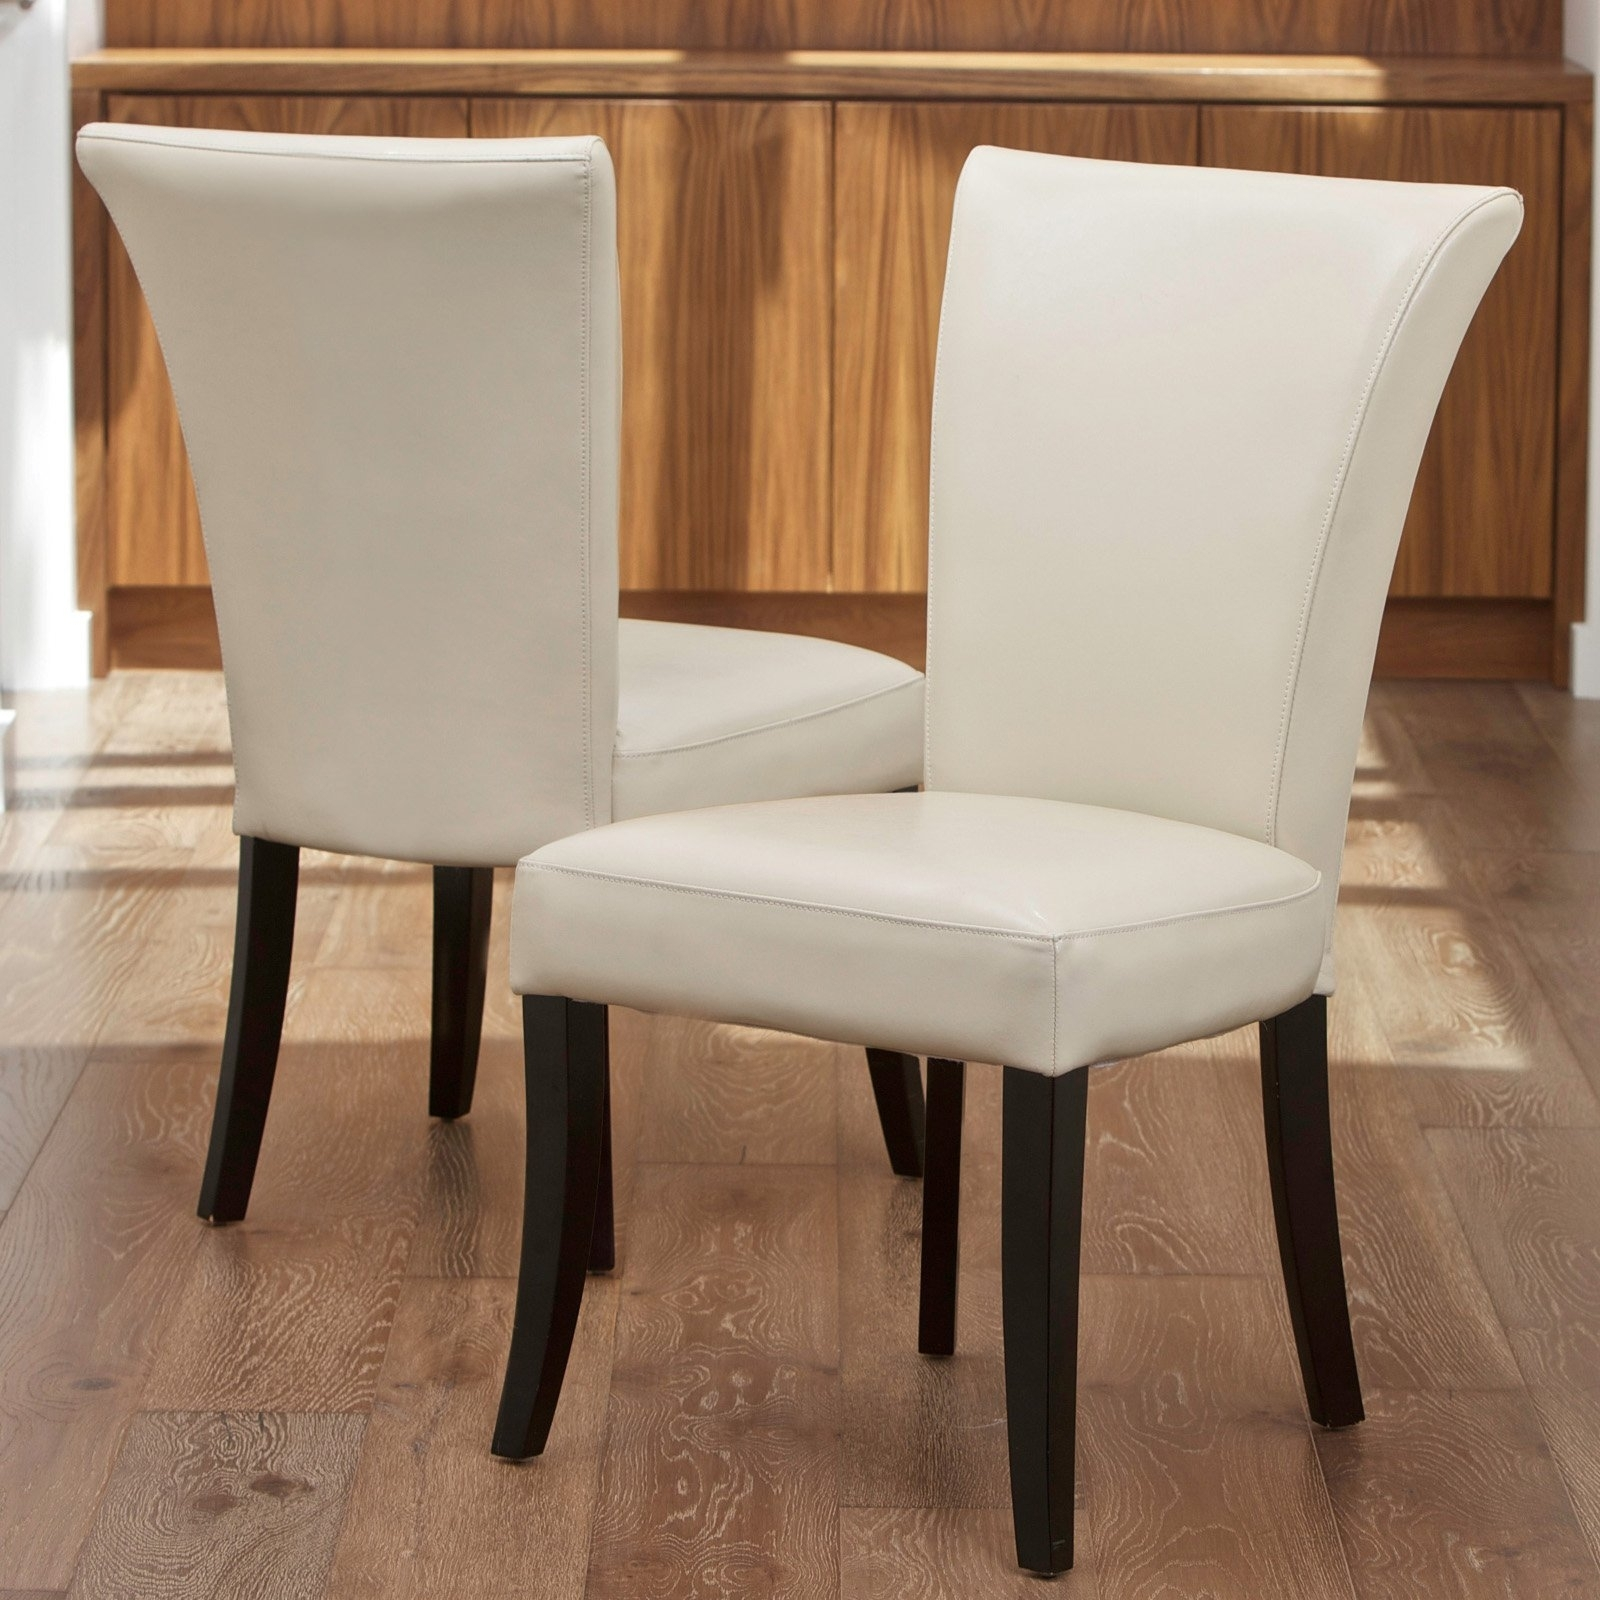 2018 Ivory Leather Dining Chairs Inside Stanford Ivory Leather Dining Chairs – 2 Pack – Walmart (Gallery 11 of 25)